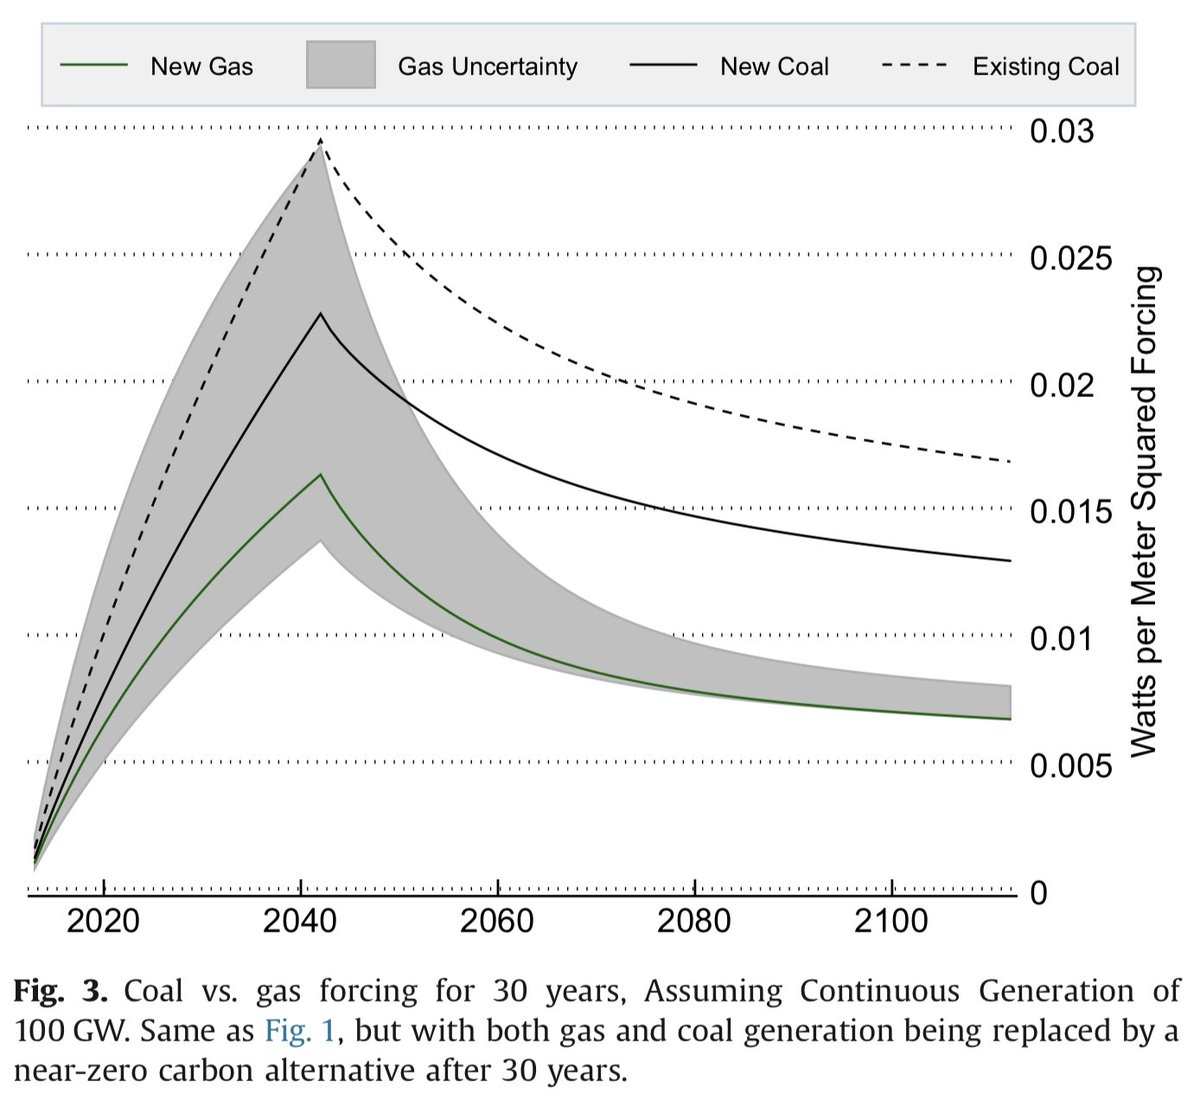 The difference between long-run climate impacts of gas and coal are even more pronounced if we examine a shorter generation period. If we compare gas and coal over 30 years (and assume both are replaced by, say, renewables after that), we get the figure below: 20/